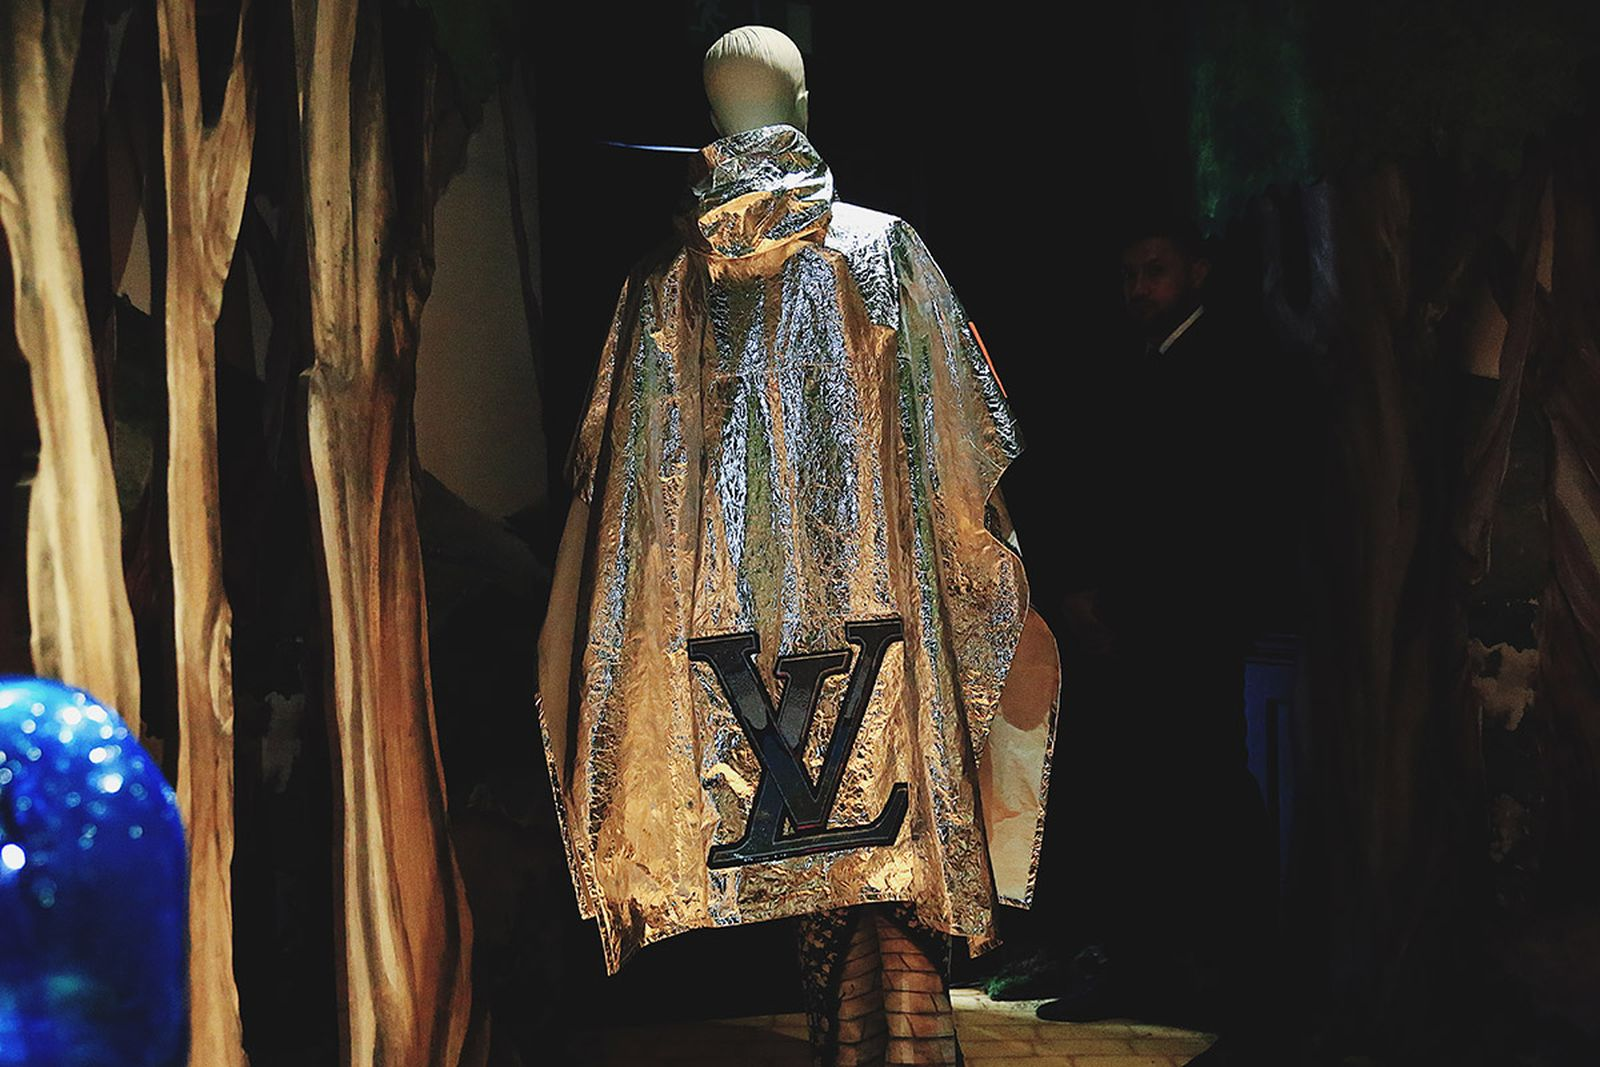 louis vuitton virgil abloh london pop up